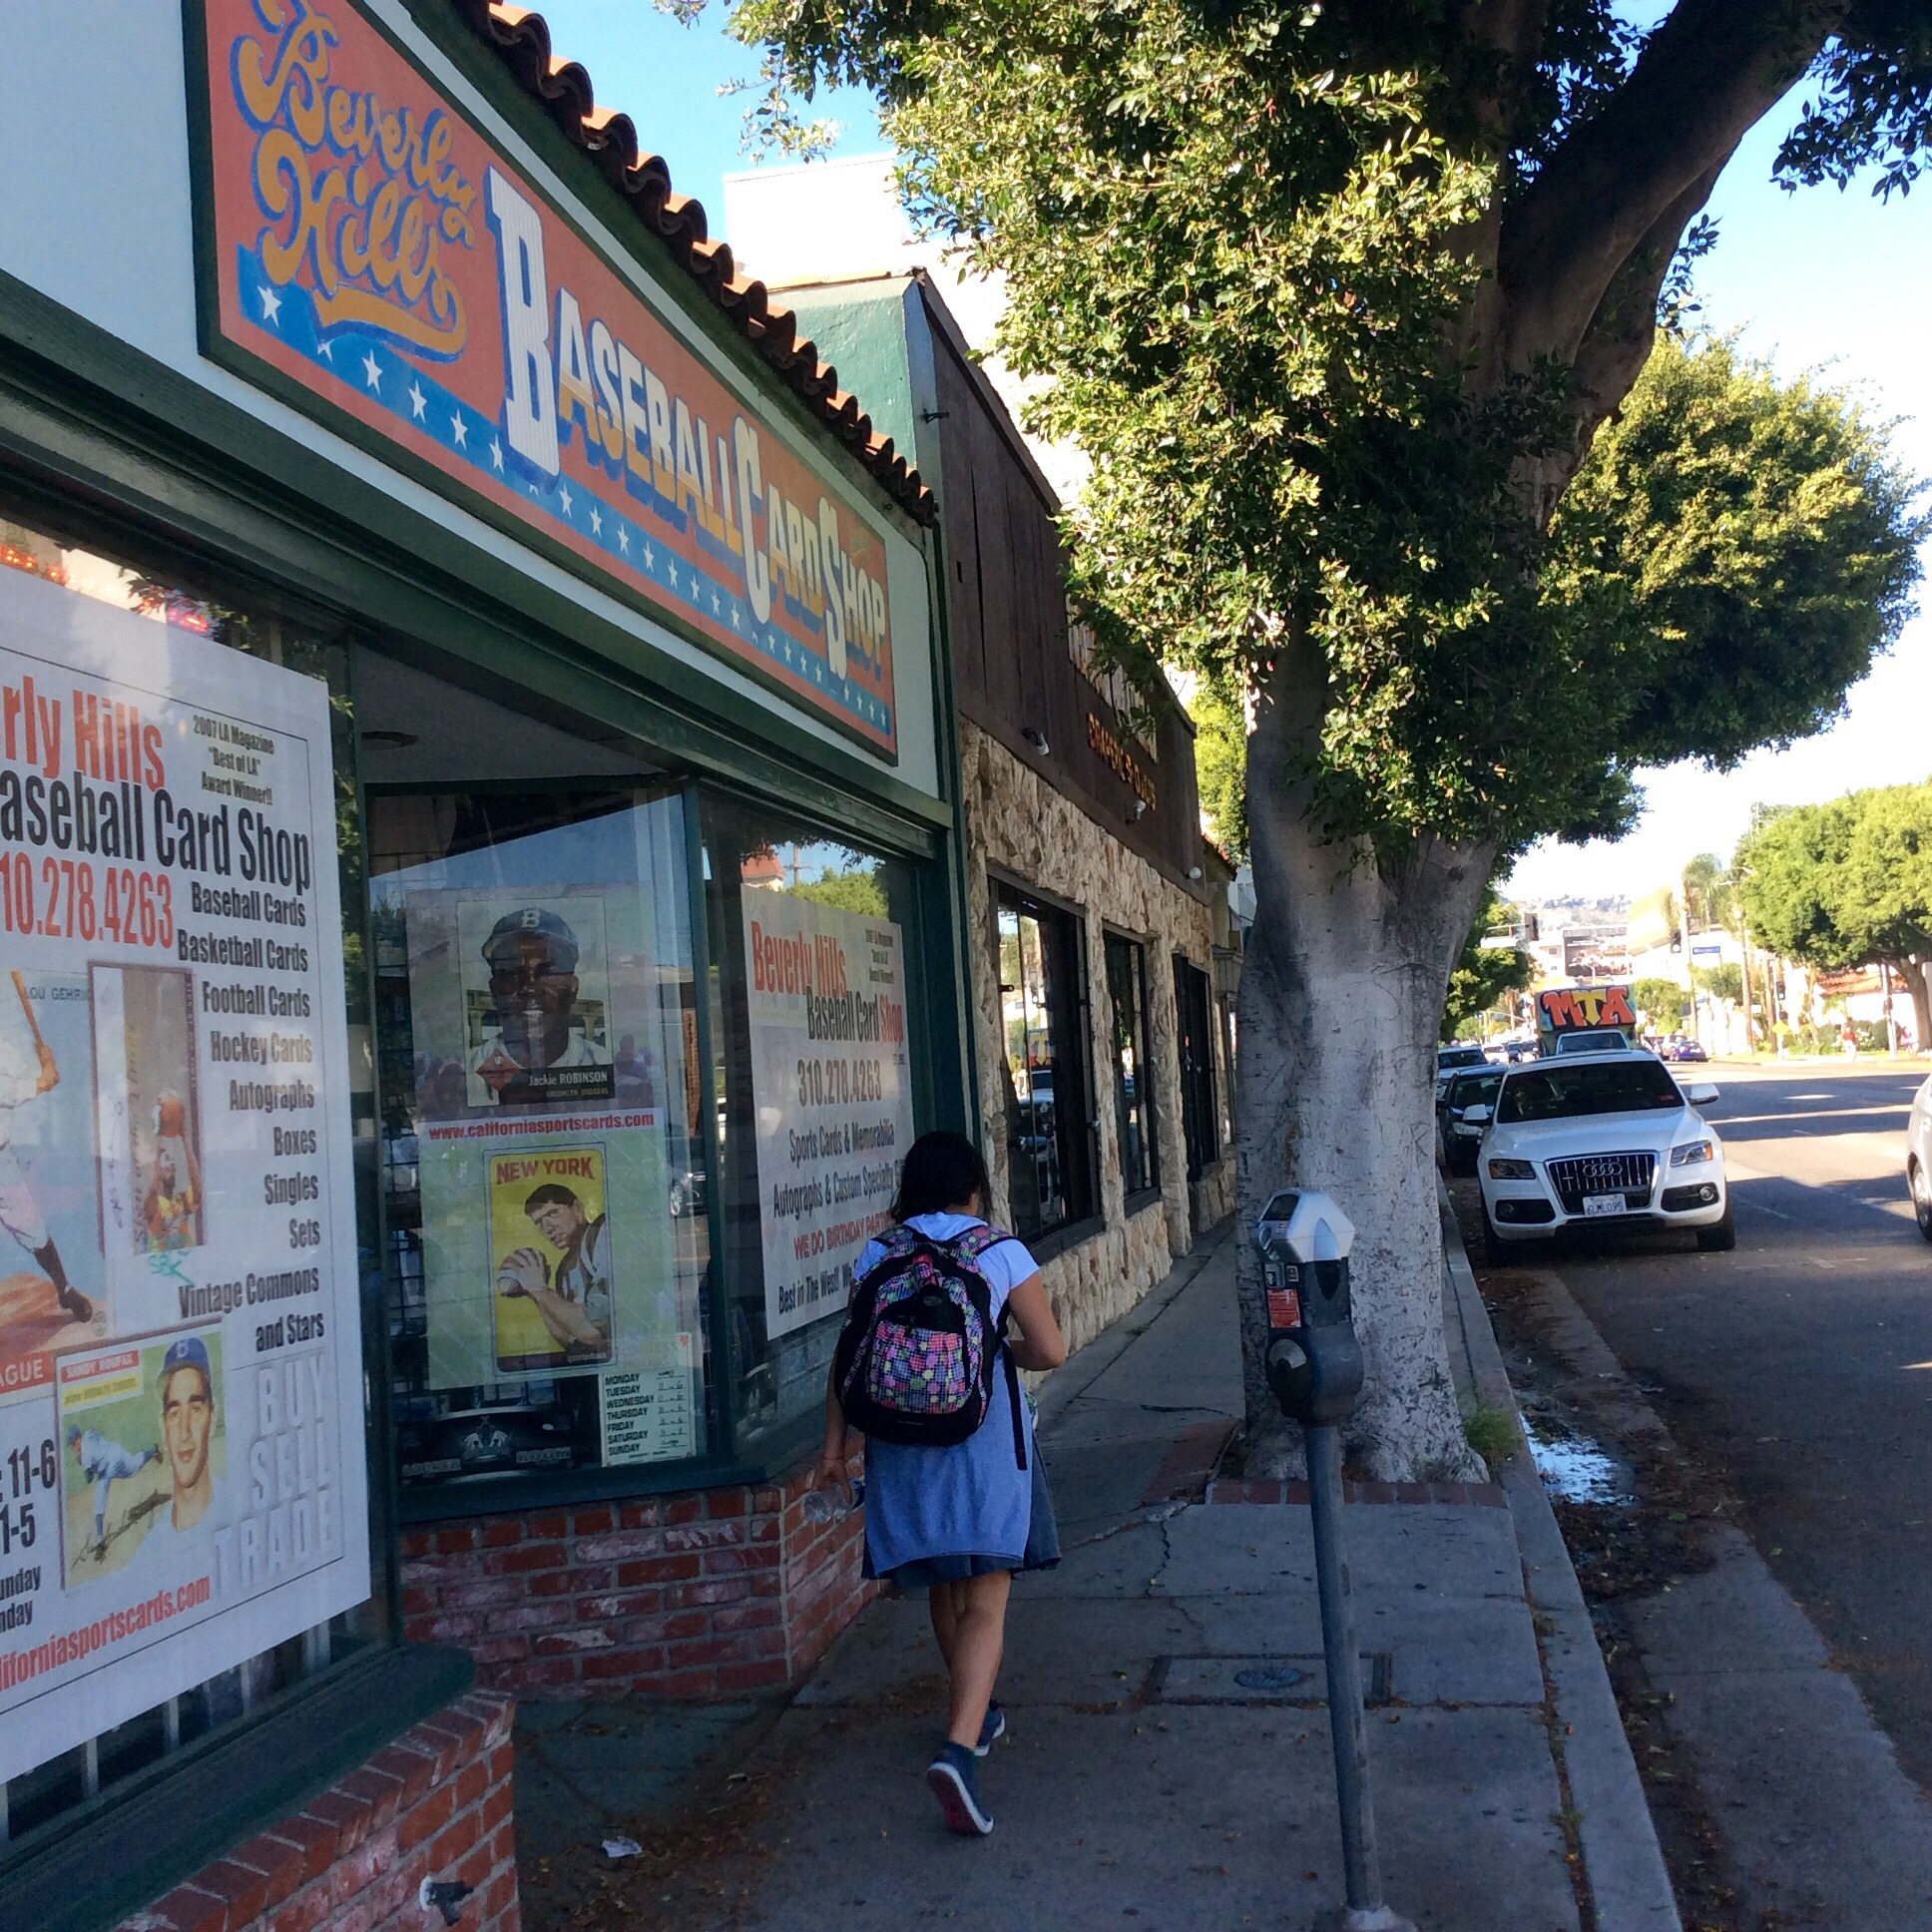 Beverly Hills Baseball Card Shop